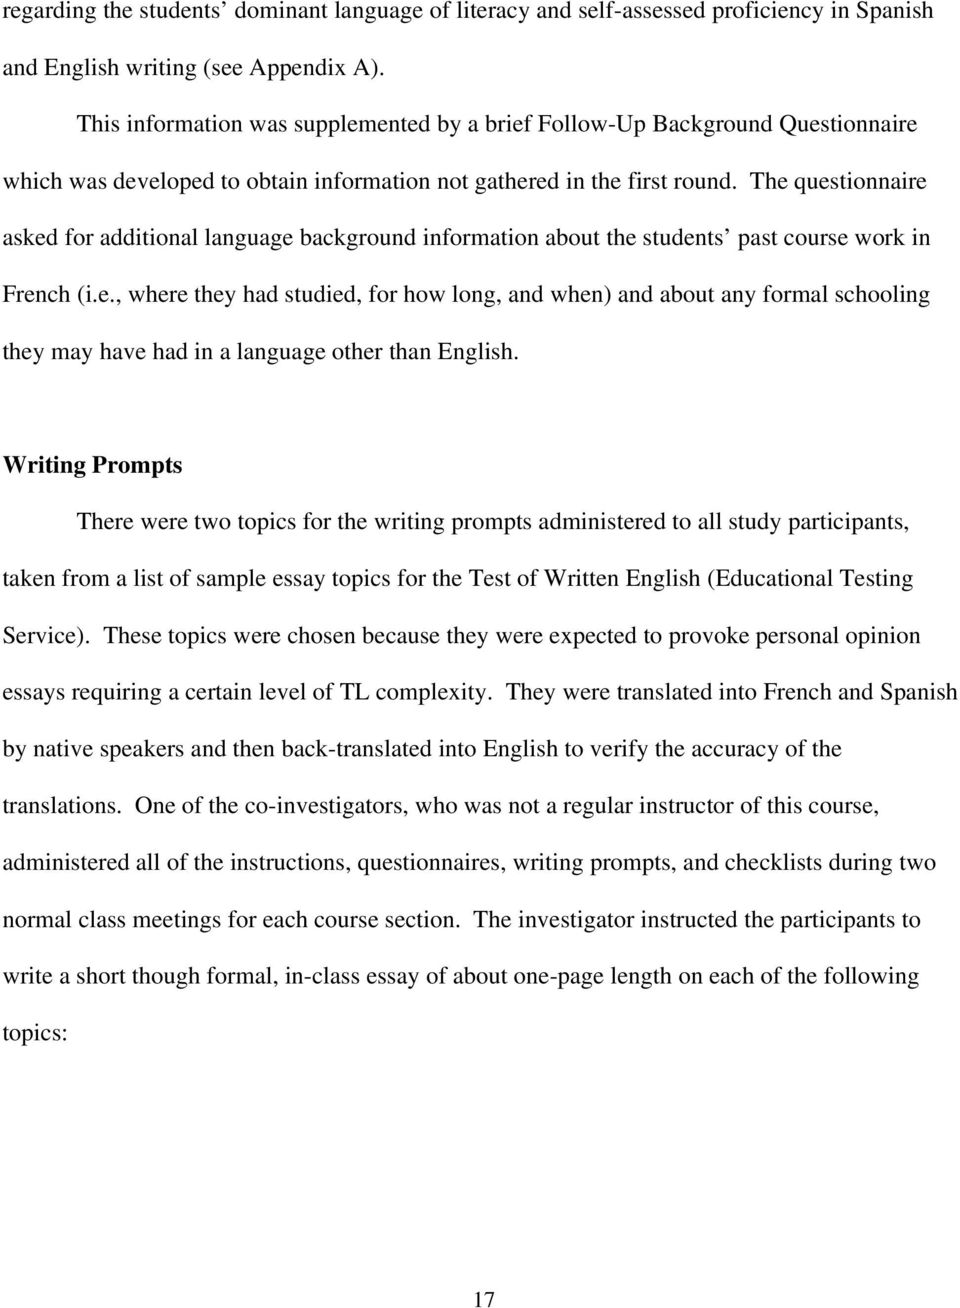 George Washington Essay Paper  Psychology As A Science Essay also College Essay Papers Sample Essay Topics For High School Research Paper Samples  The Thesis Statement In A Research Essay Should